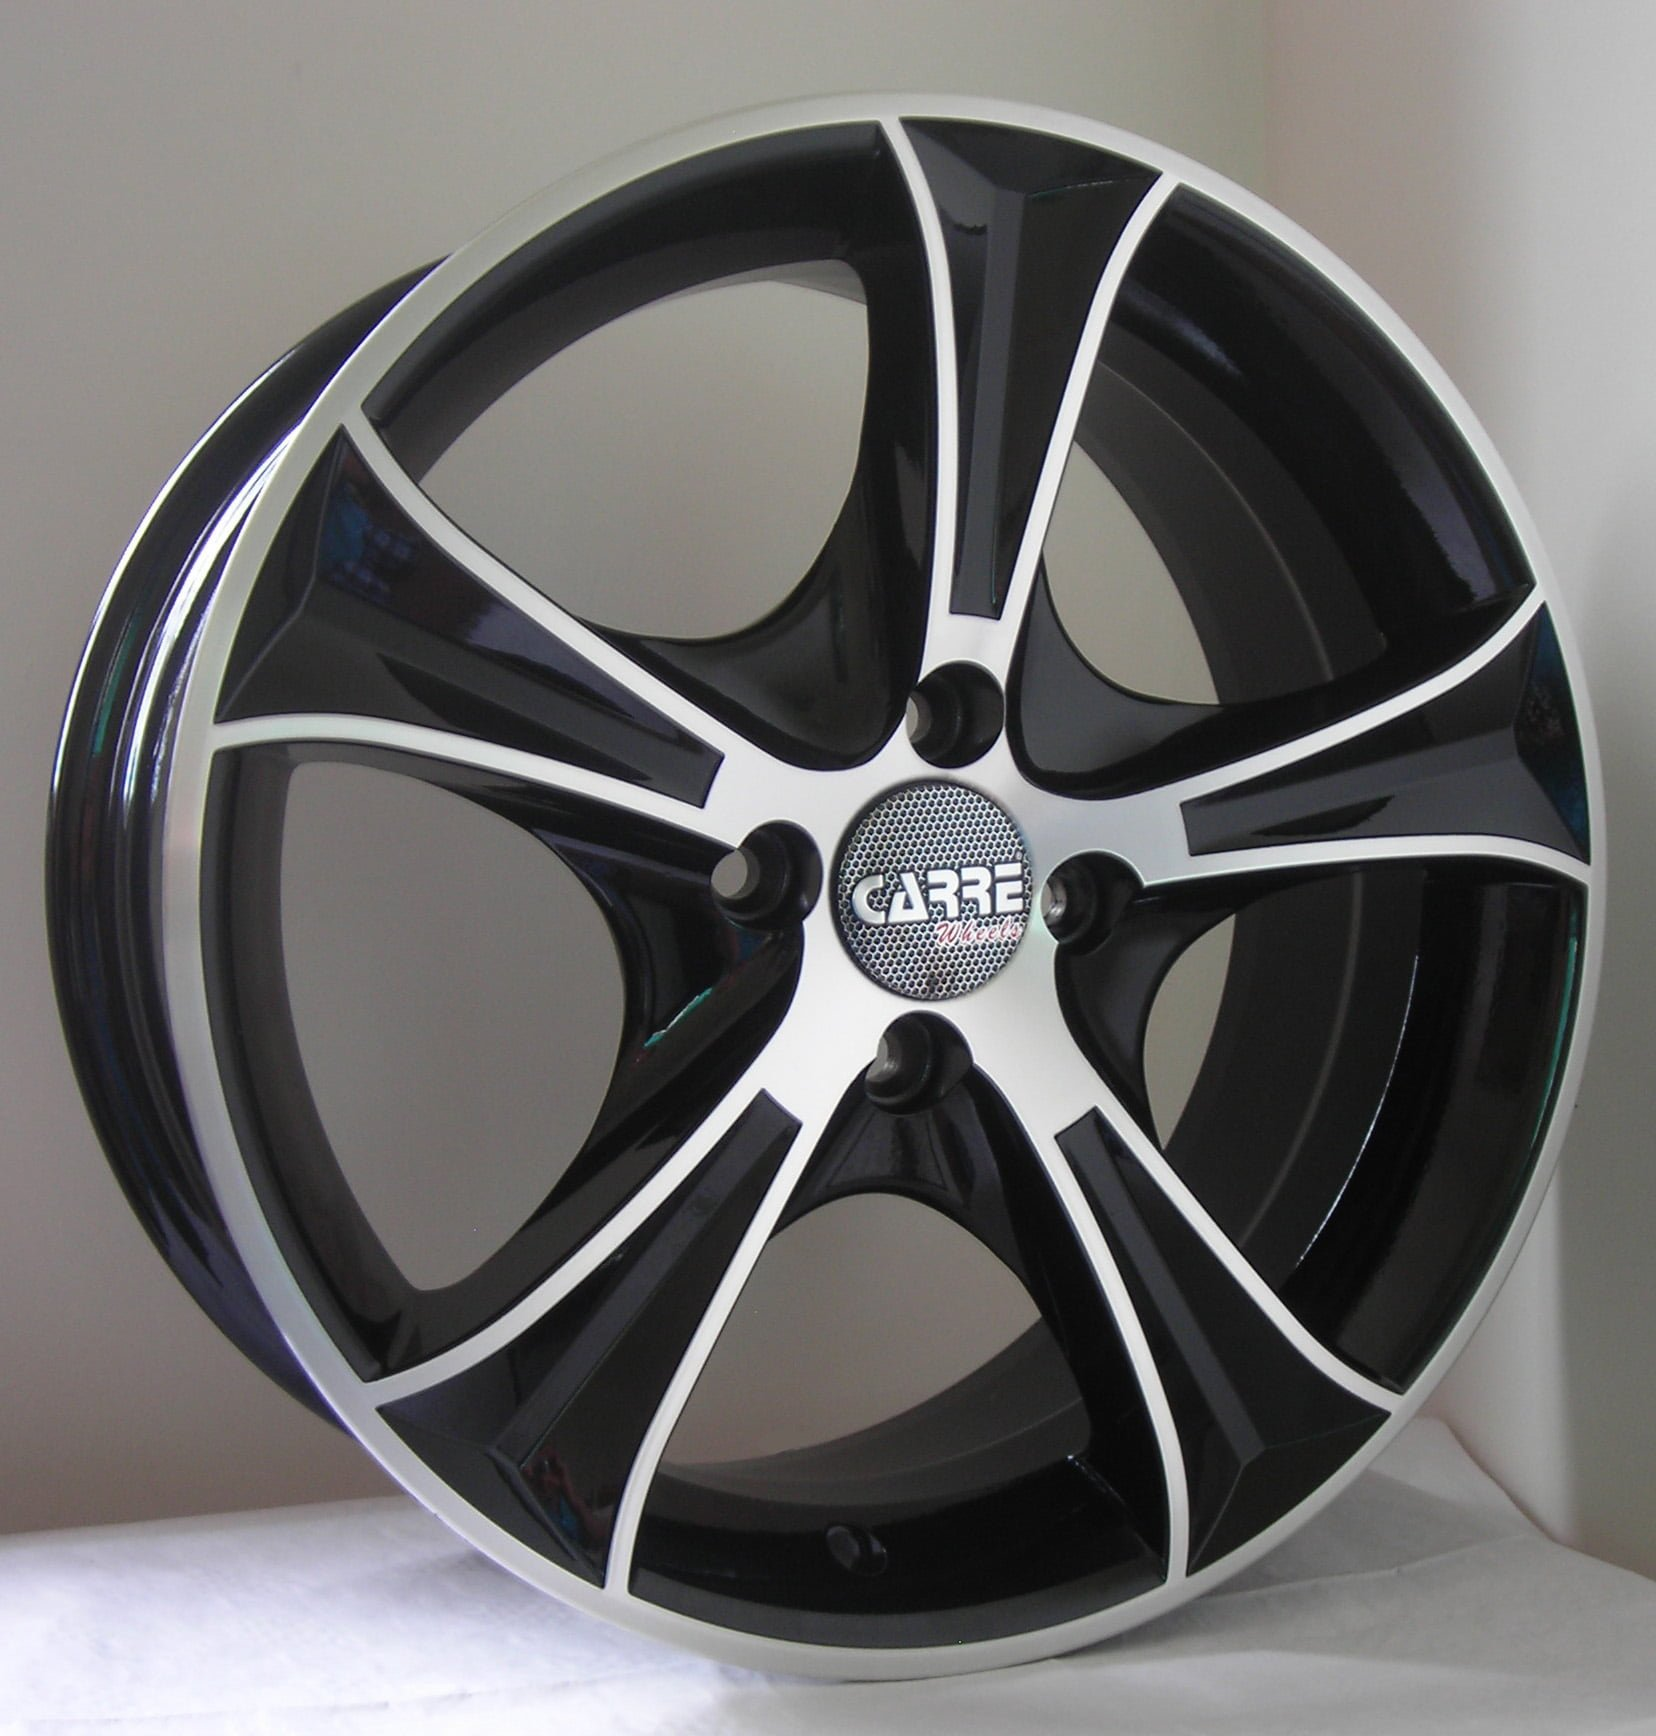 Alloy Wheels vs Normal Wheels